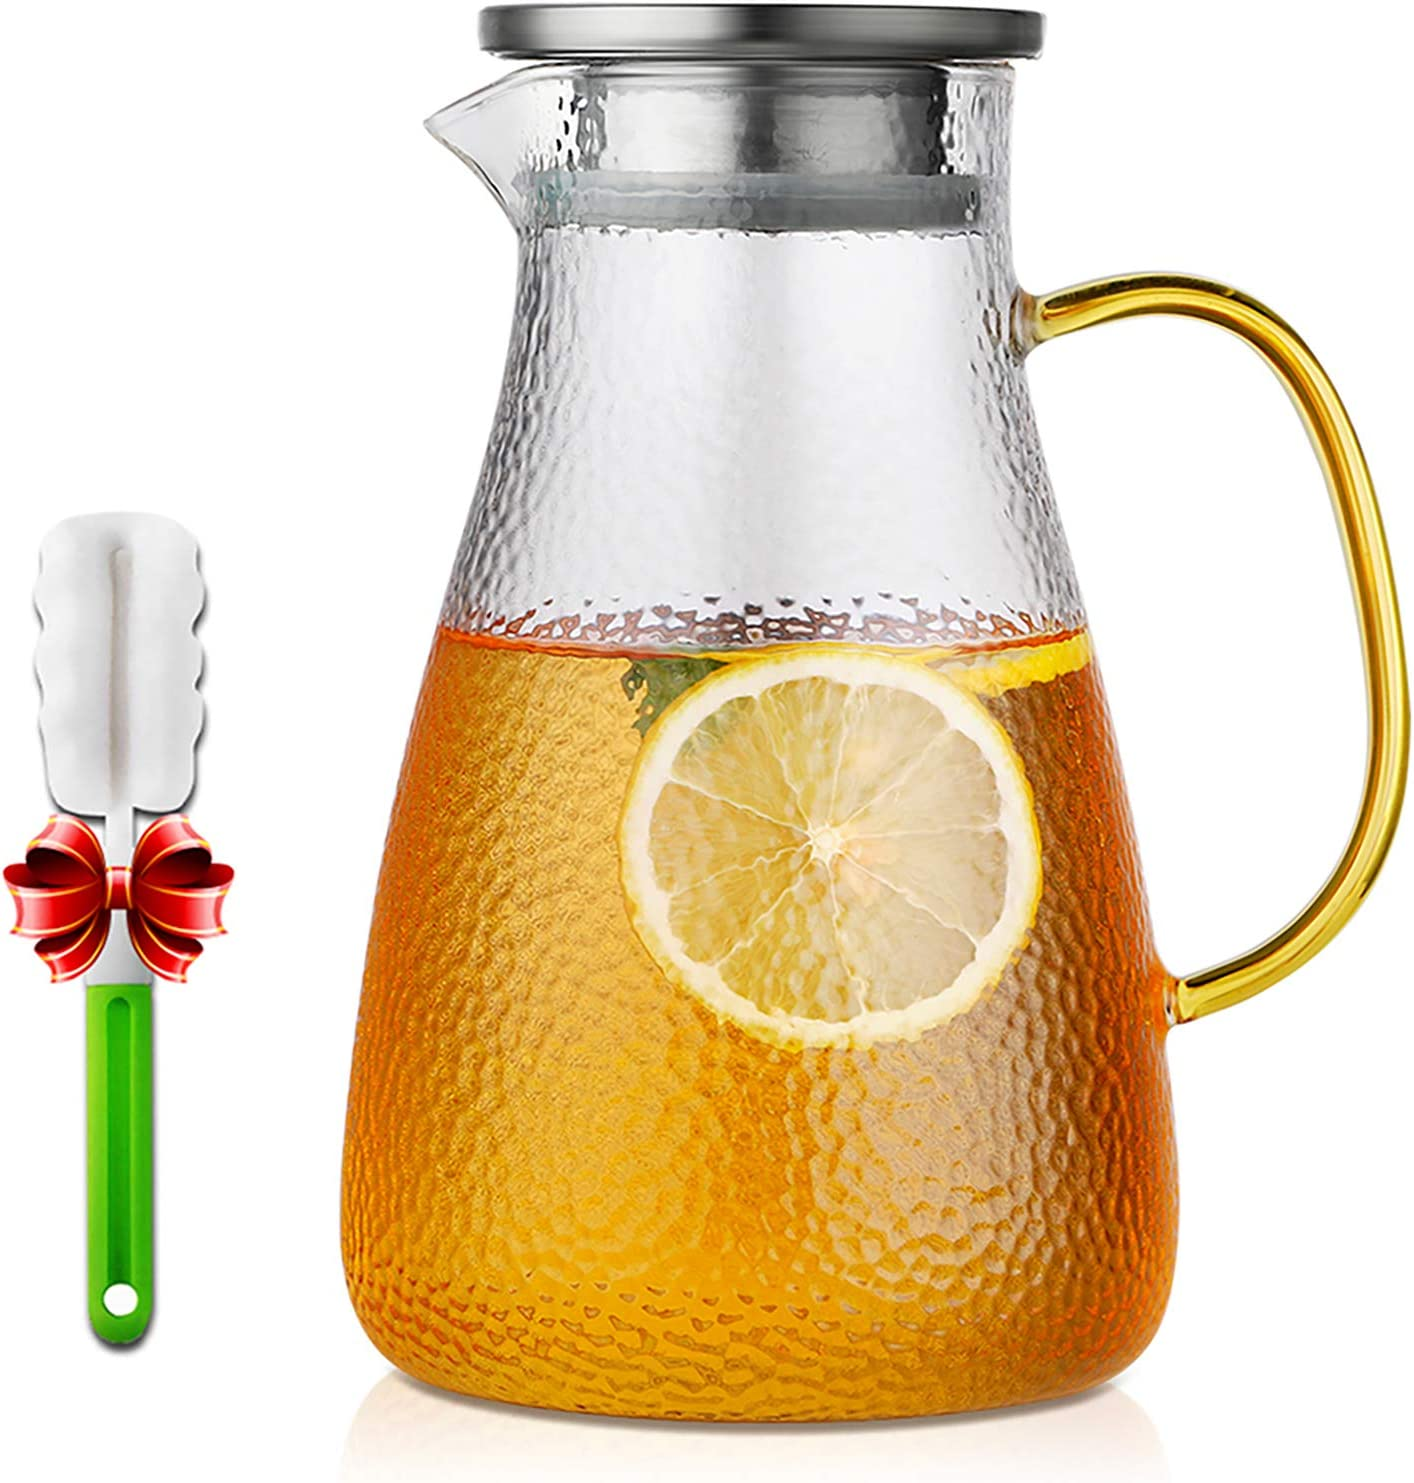 Water Pitcher, ONEISALL Glass Pitcher with Lid and Drip-Free Spout for Homemade Juice/Iced Tea, Hot/Cold Water Carafe with Handle - 50 Ounce/1.5 Liter